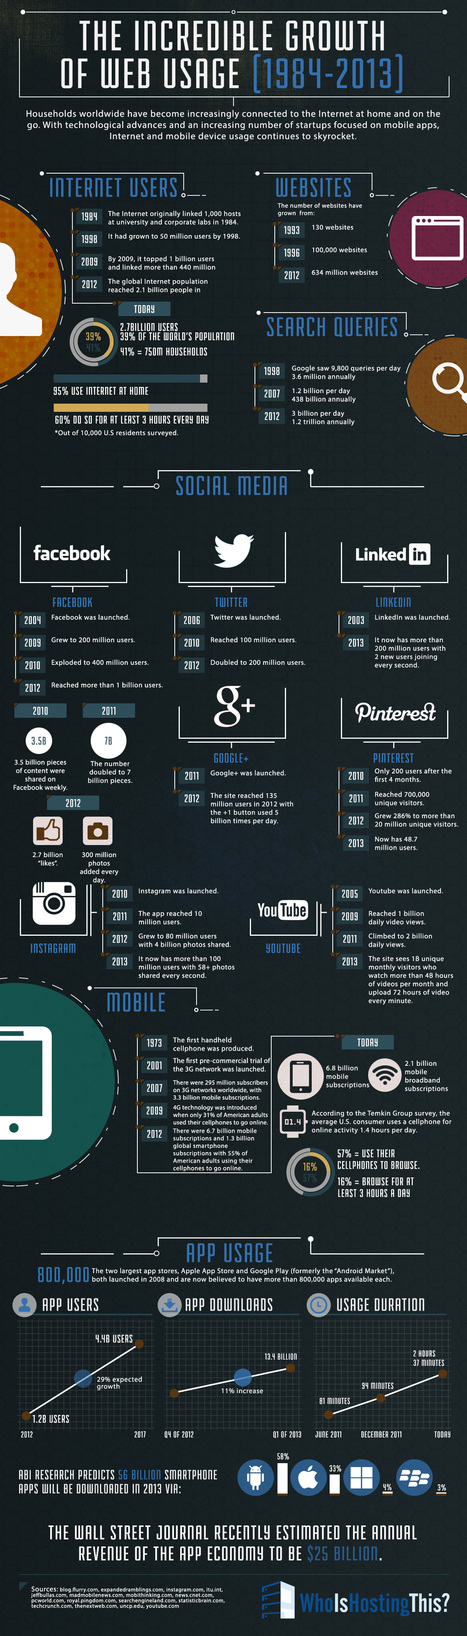 Infographic: The Incredible Growth of Web Usage [1984-2013] | Social Media Feed | Scoop.it